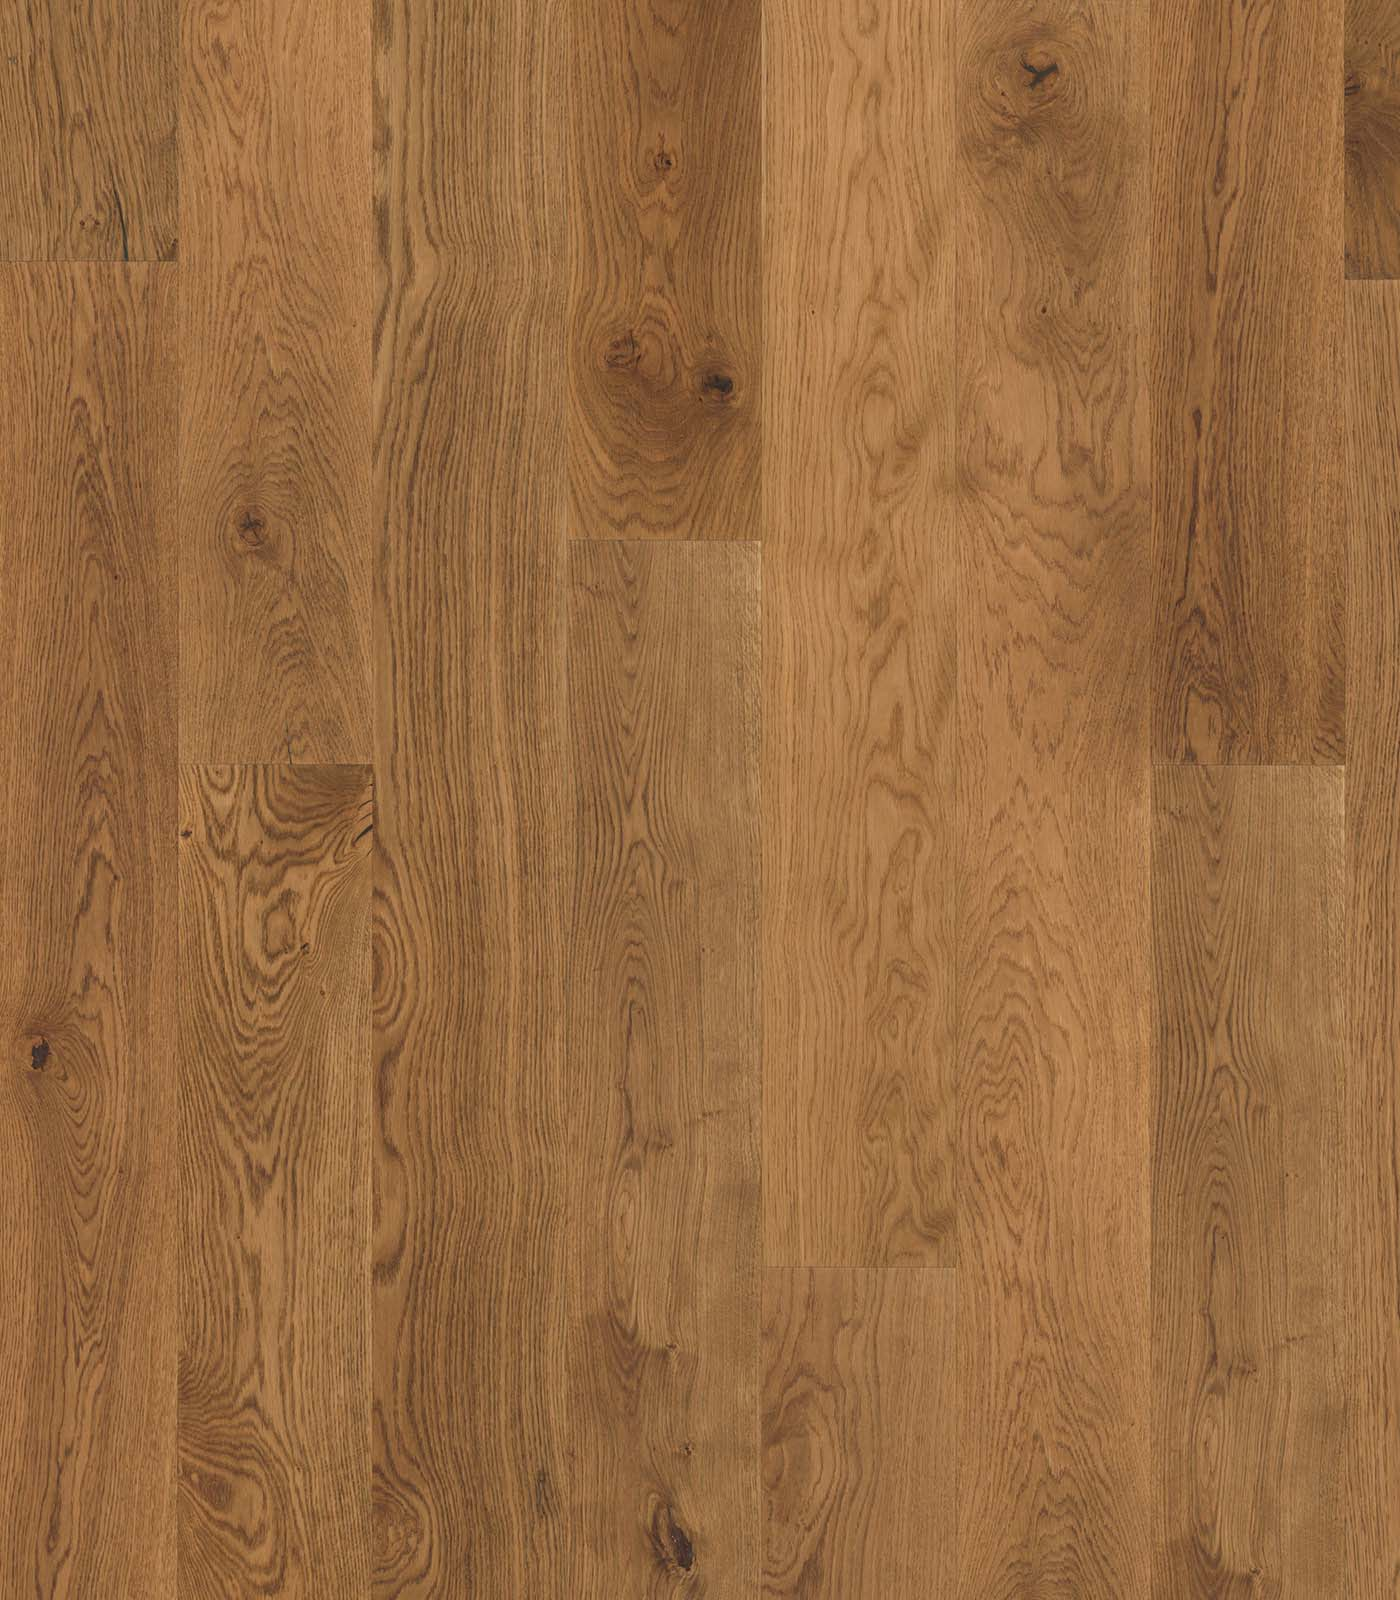 Semi-Fumed Oak Rustic-Origins Collection-European Oak Floors-flat